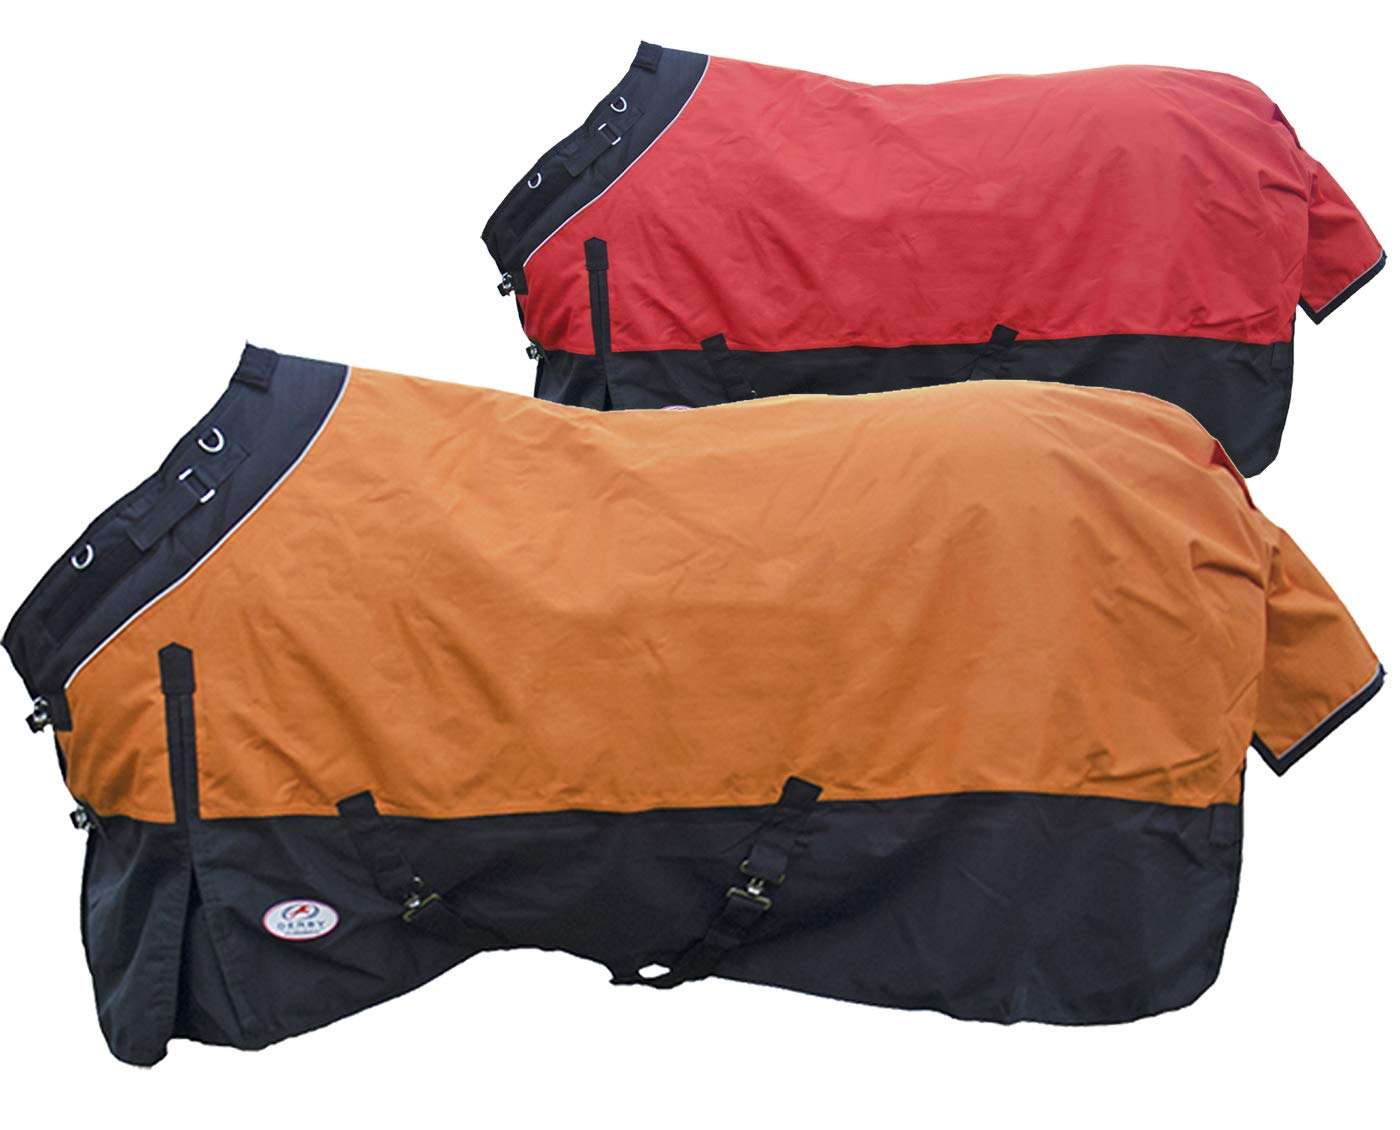 Derby Originals Windstorm Series Premium Horse and Draft Winter Turnout Rain Sheets with 1200D Ripstop Waterproof Nylon Exterior and Soft 210T Lining